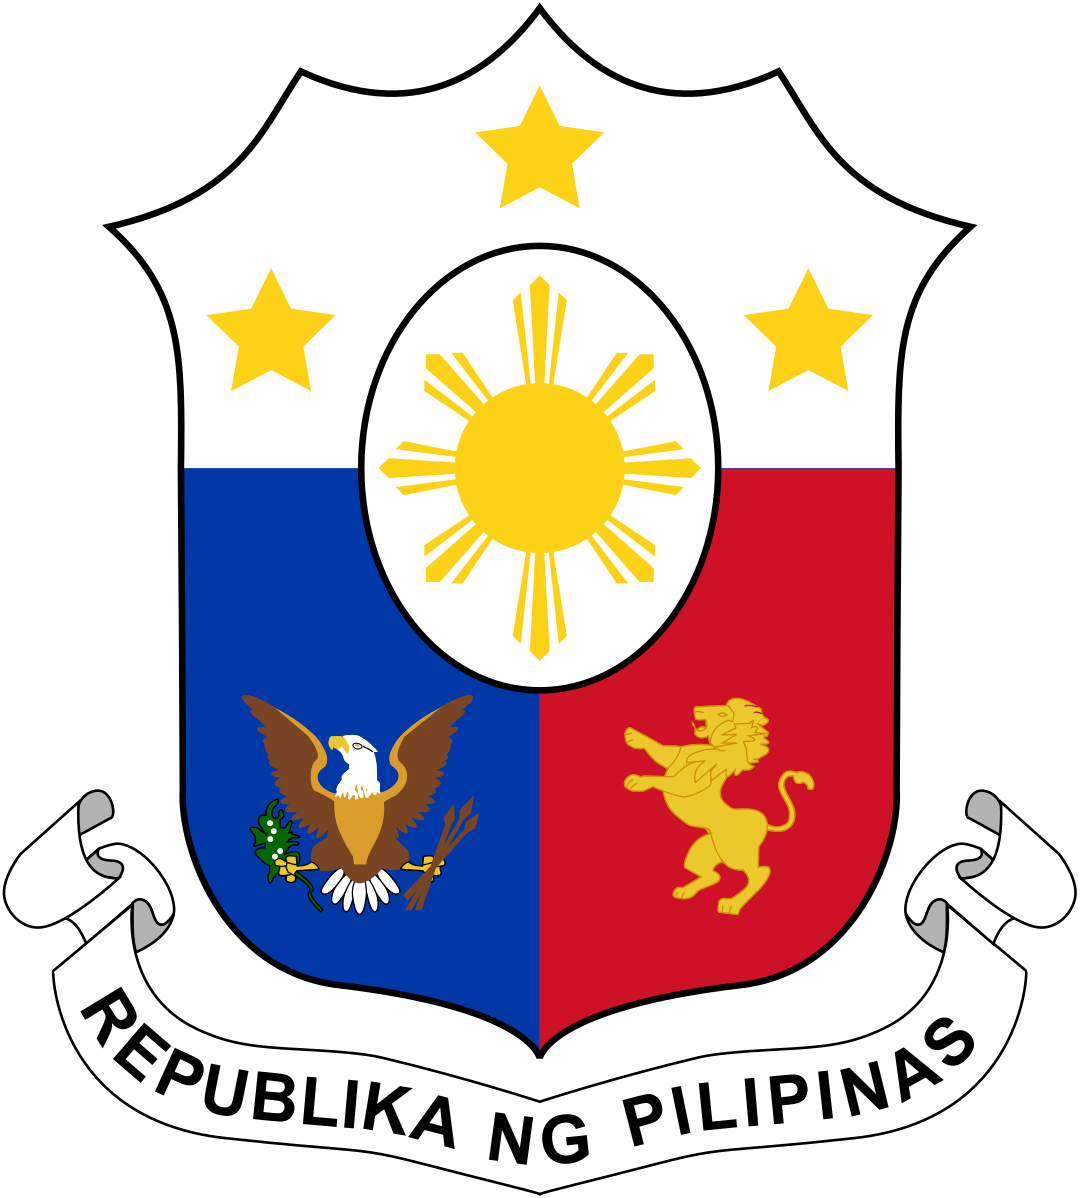 Coat Of Arms Of The Philippines Coat Of Arms Filipino Tattoos Philippines [ 1198 x 1080 Pixel ]